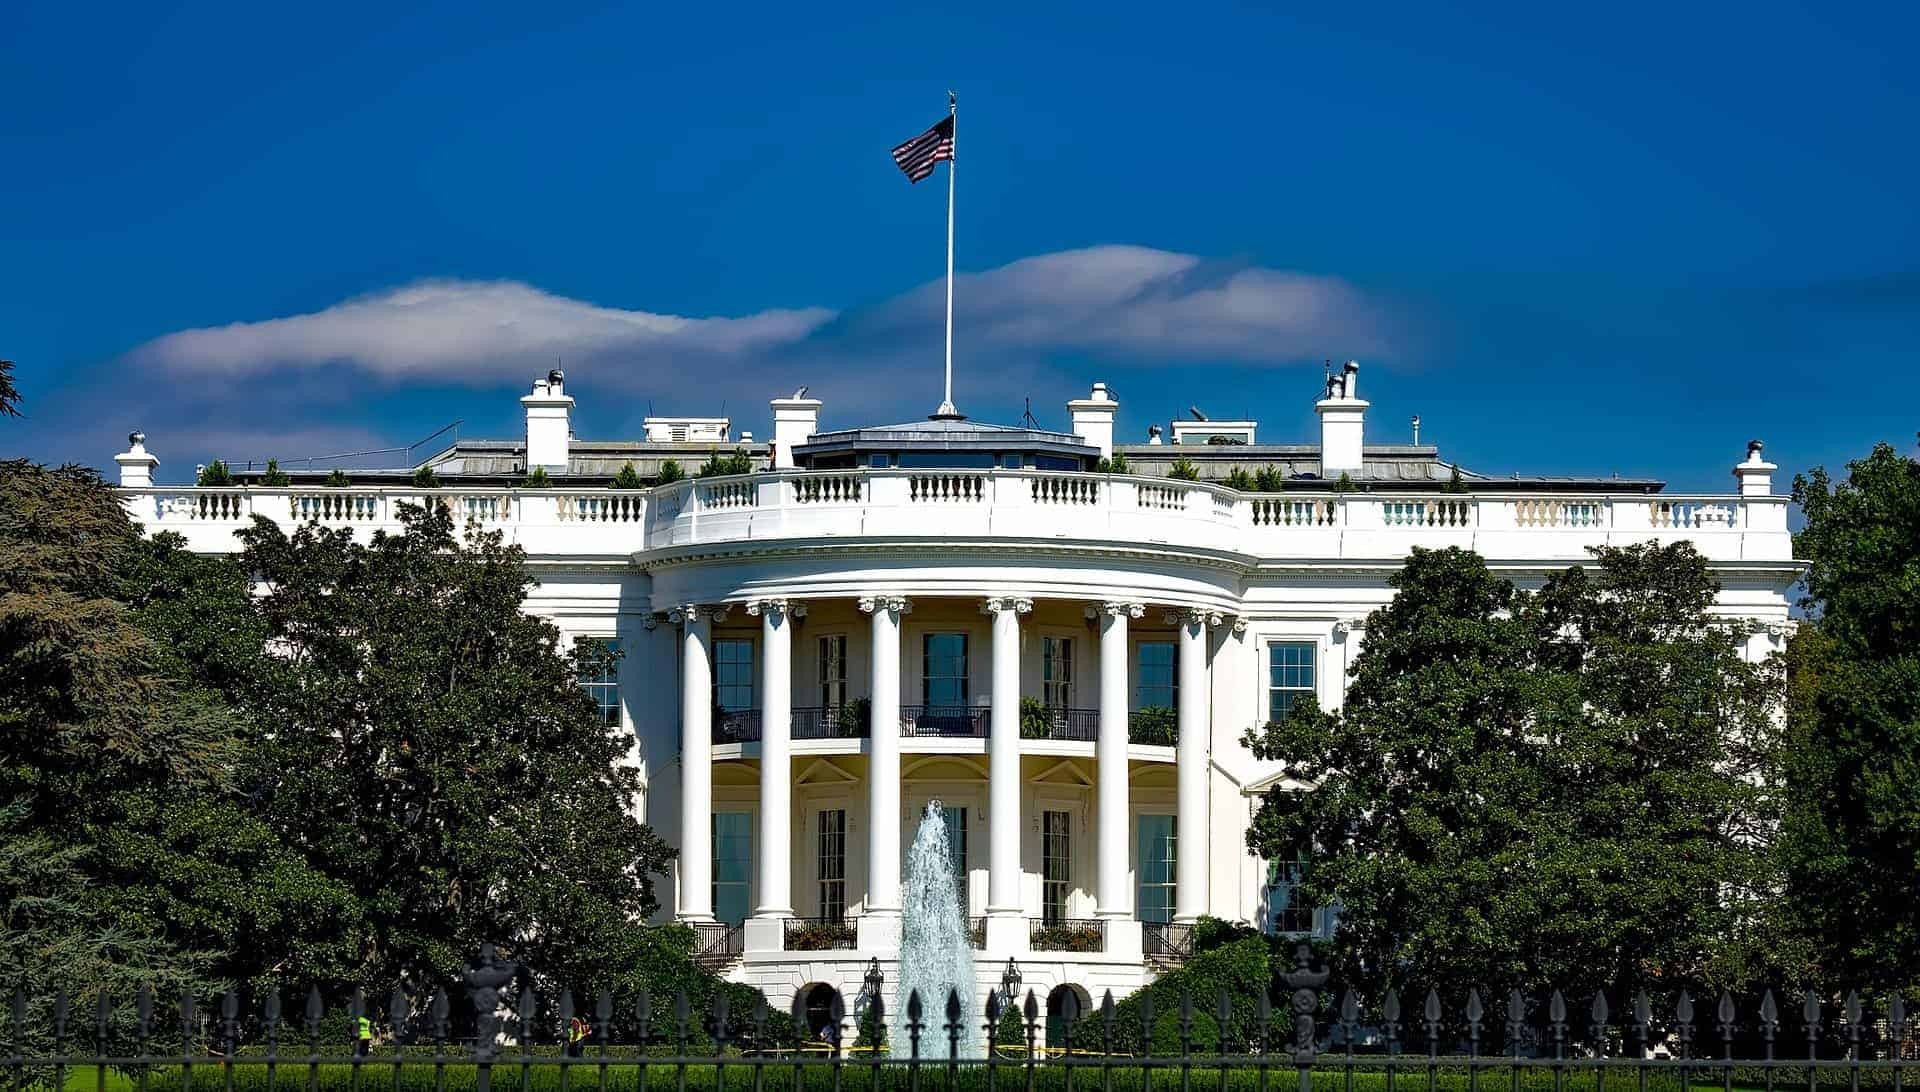 The White House in Washington D.C. is the residence and workplace of the U.S. President.